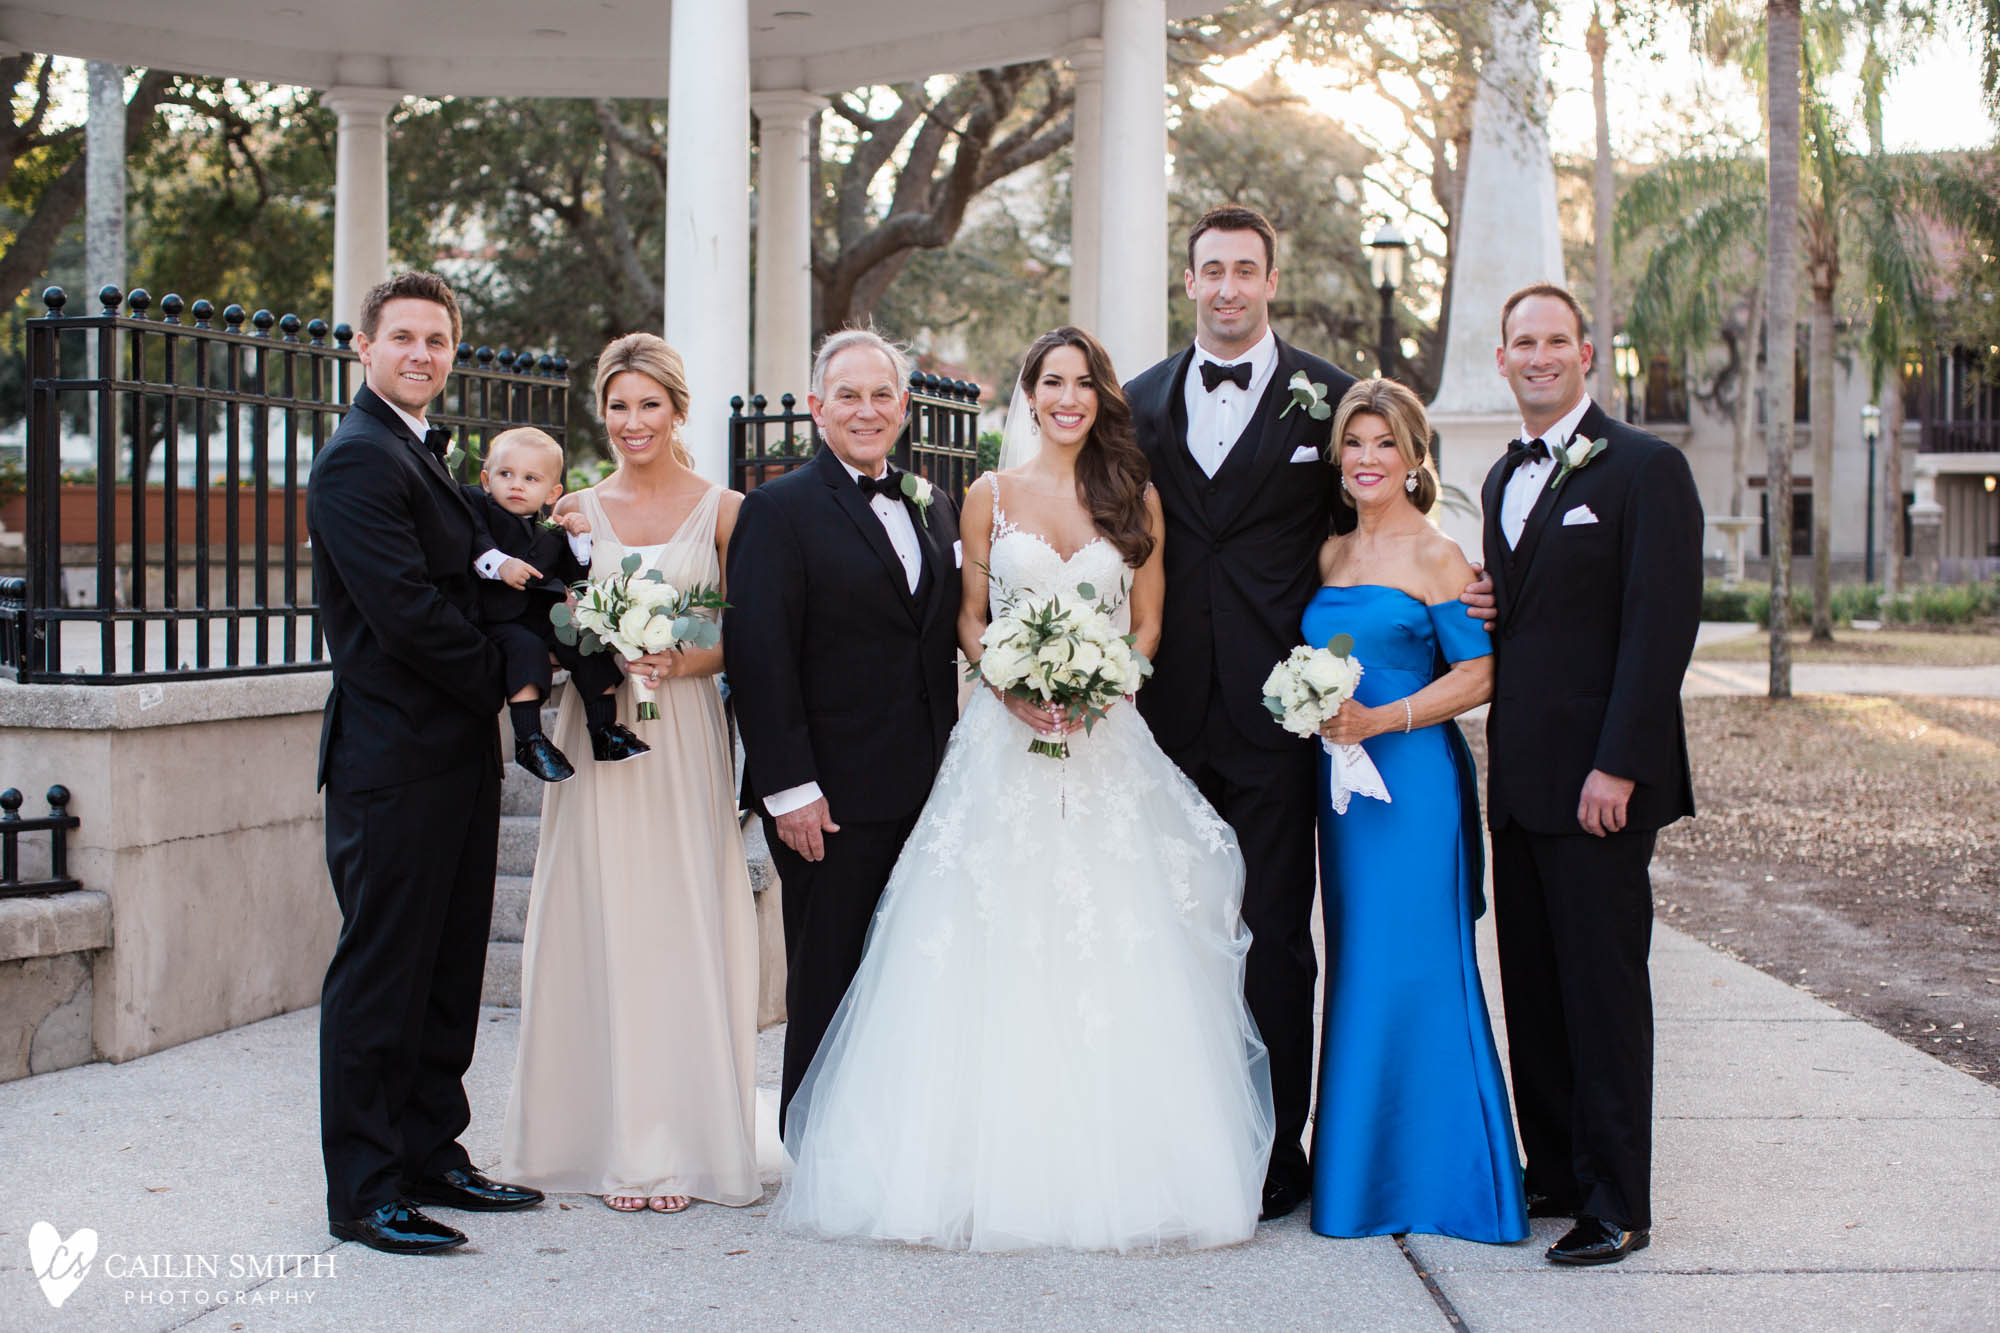 Korrie_Michael_Treasury_on_the_Plaza_Wedding_Photography_047.jpg